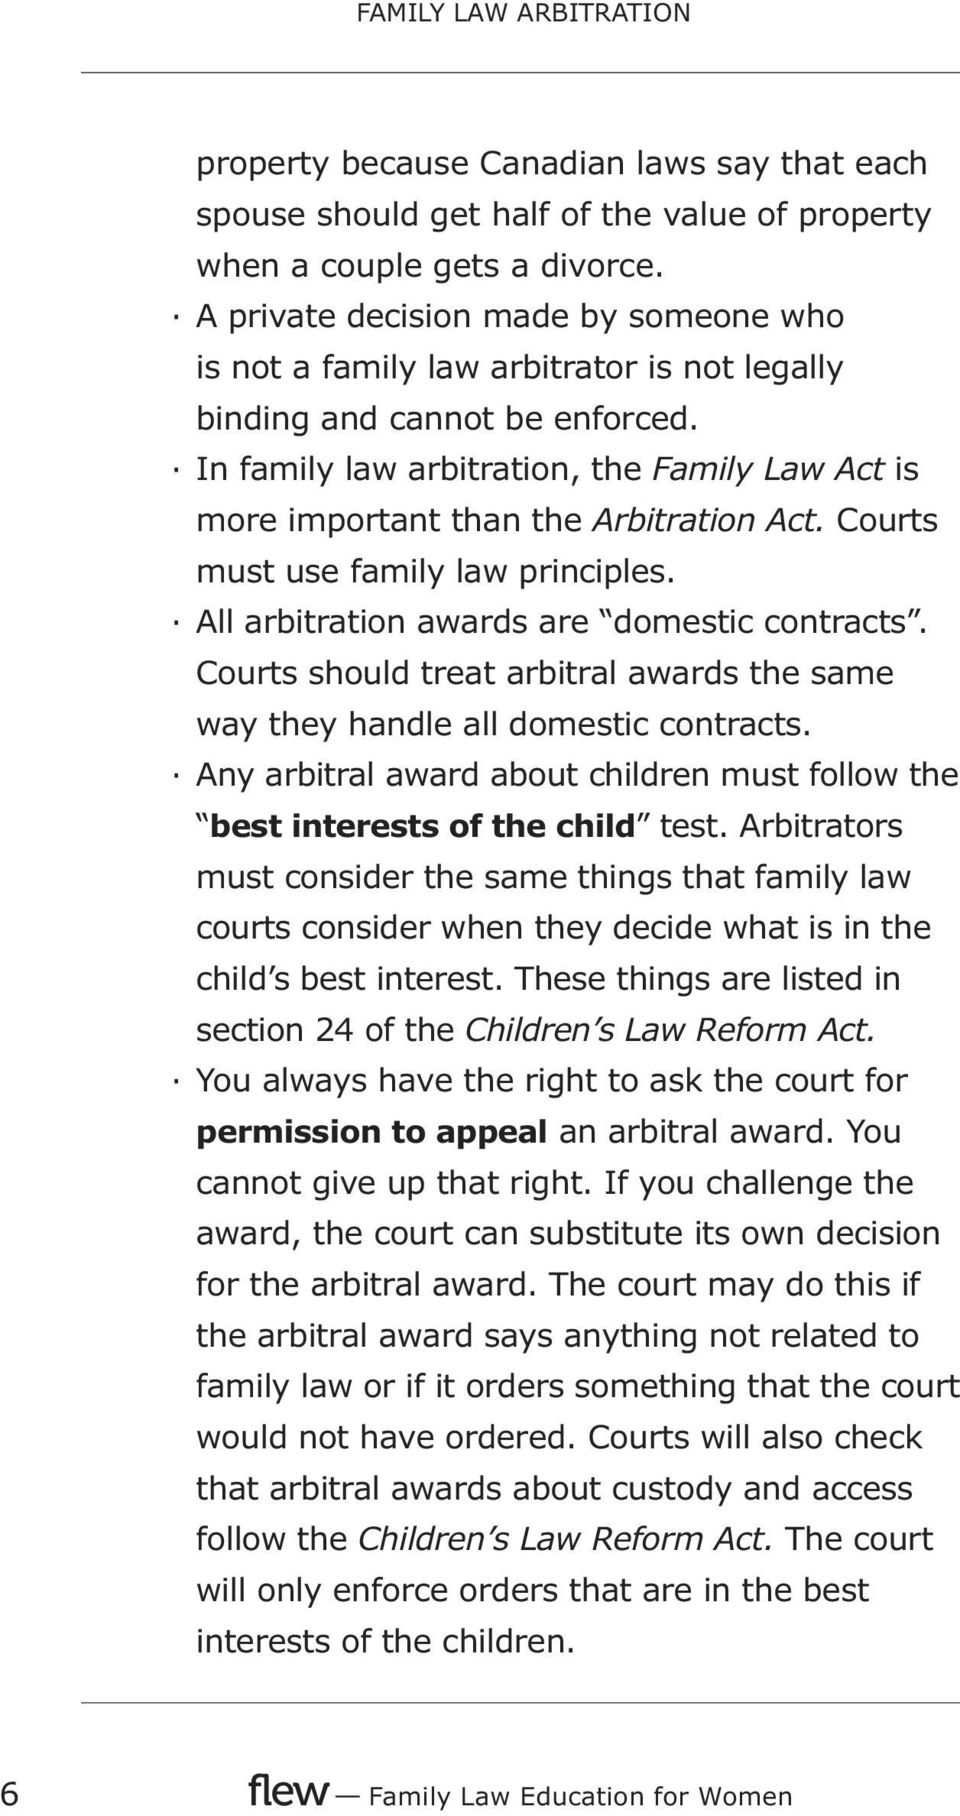 In family law arbitration, the Family Law Act is more important than the Arbitration Act. Courts must use family law principles. All arbitration awards are domestic contracts.